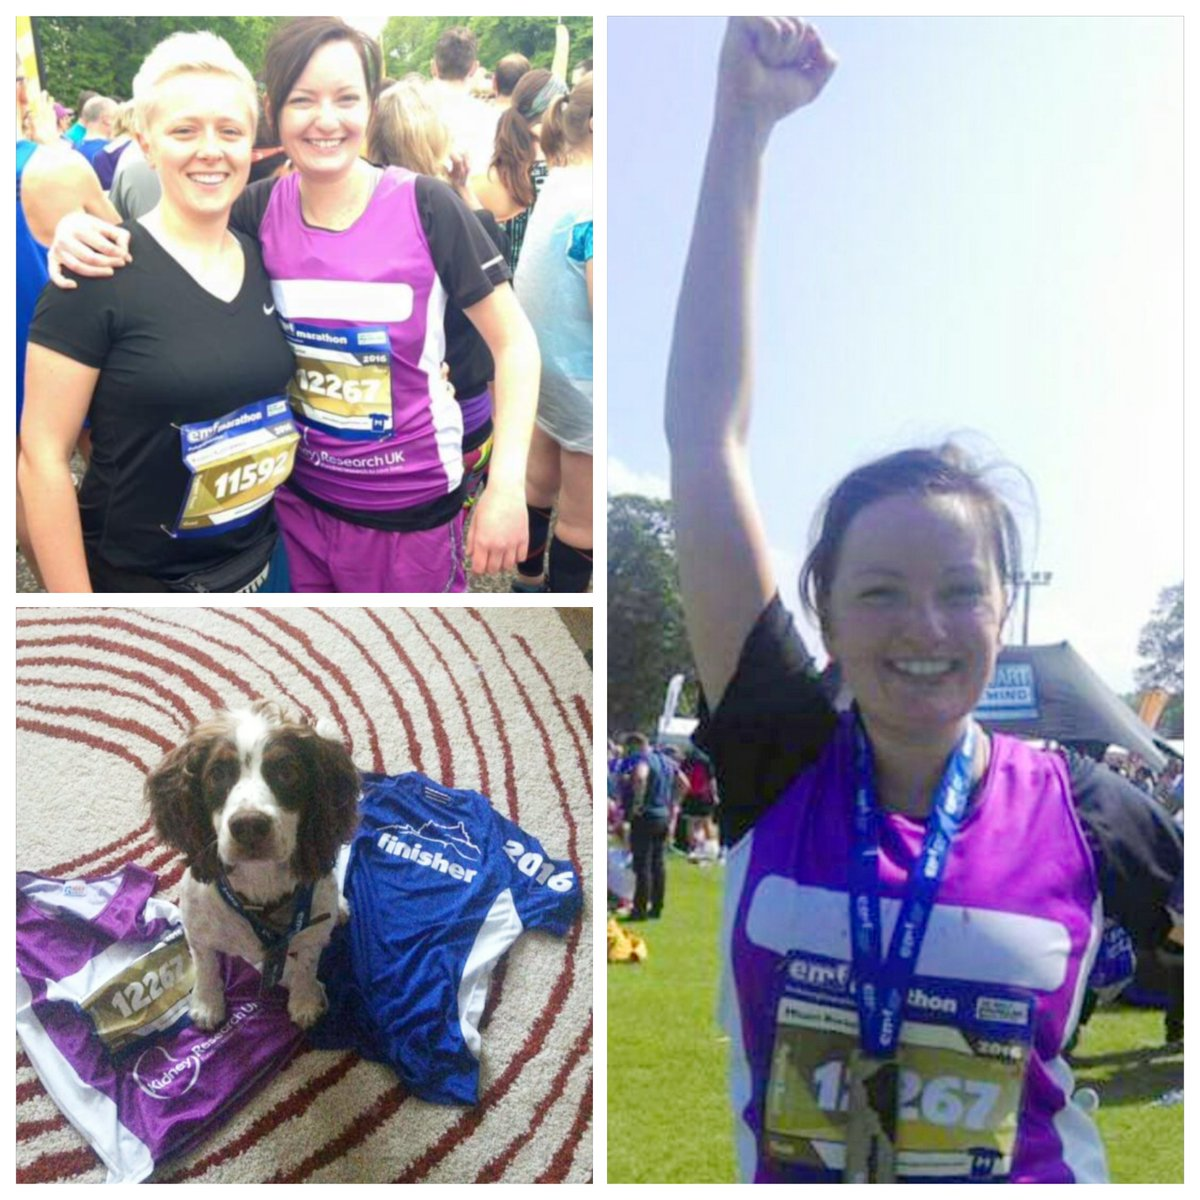 4 years ago today I ran my first marathon for @Kidney_Research fast forward 4 years and @Kidney_Research are still doing amazing work & my family will be forever greatful to them and @NHSOrganDonor for the many lives they save. #marathon #NHSScotland #StirlingNextpic.twitter.com/3mHO9JR1qS